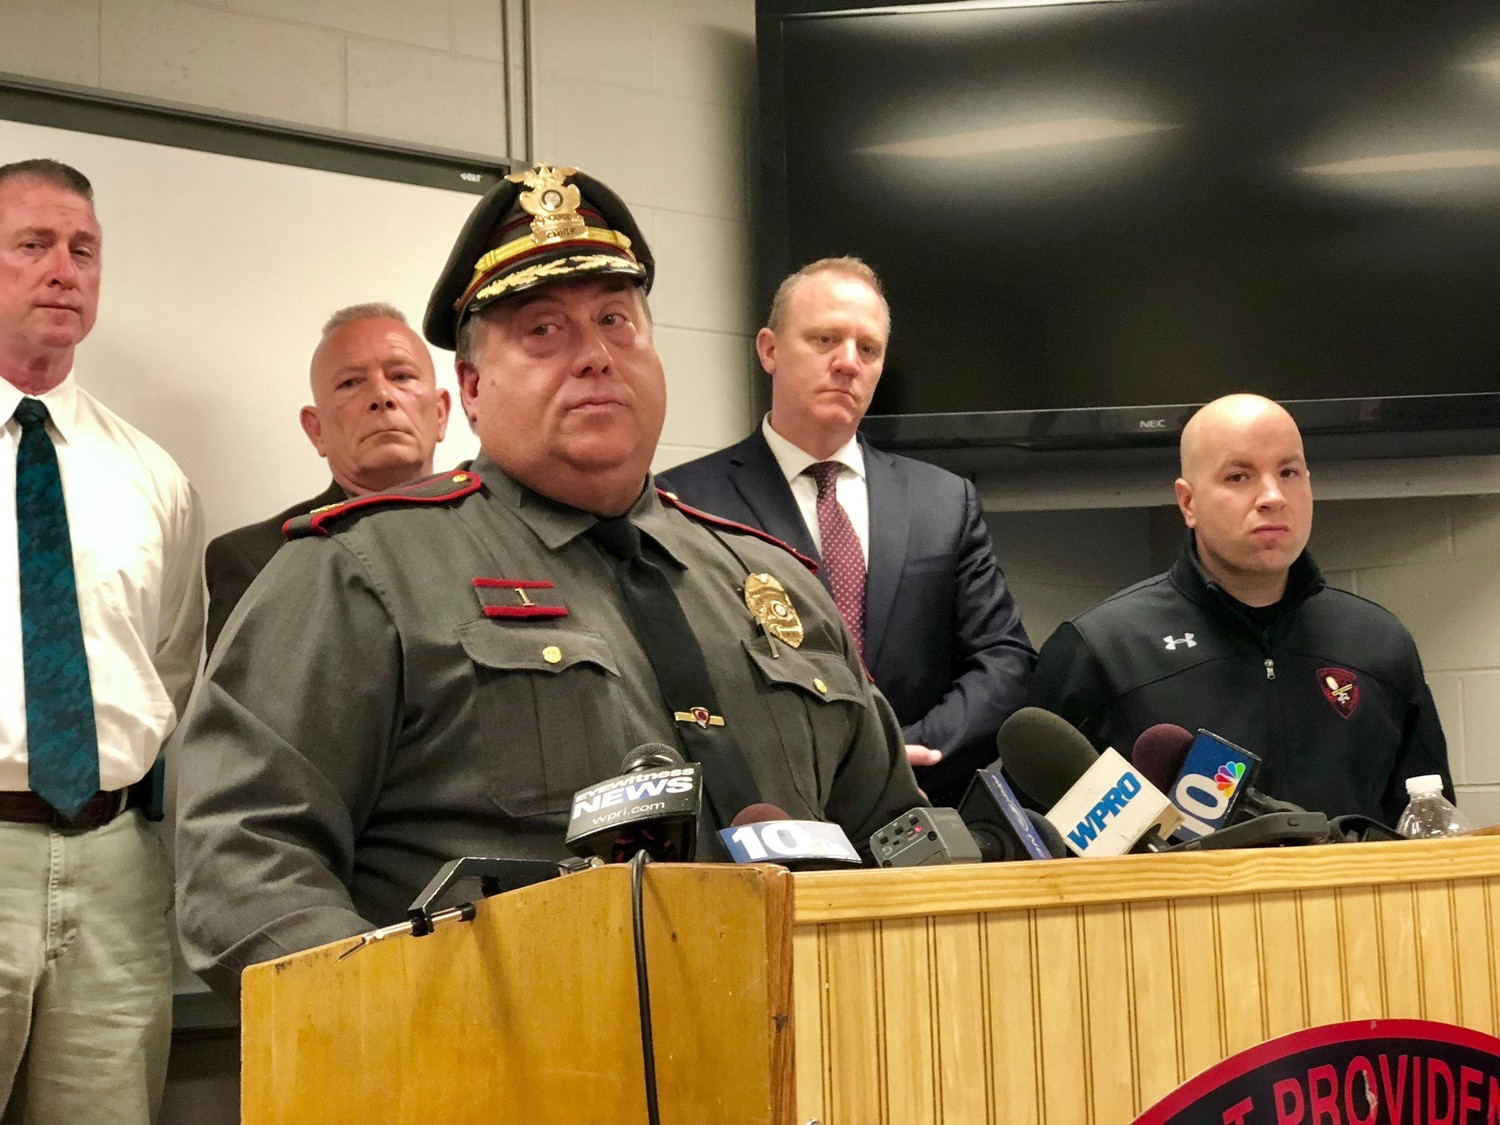 On Tuesday afternoon, East Providence Police Chief Christopher Parella said authorities are confident Mr. Morris is responsible for the death of Dr. Clive Bridgham.